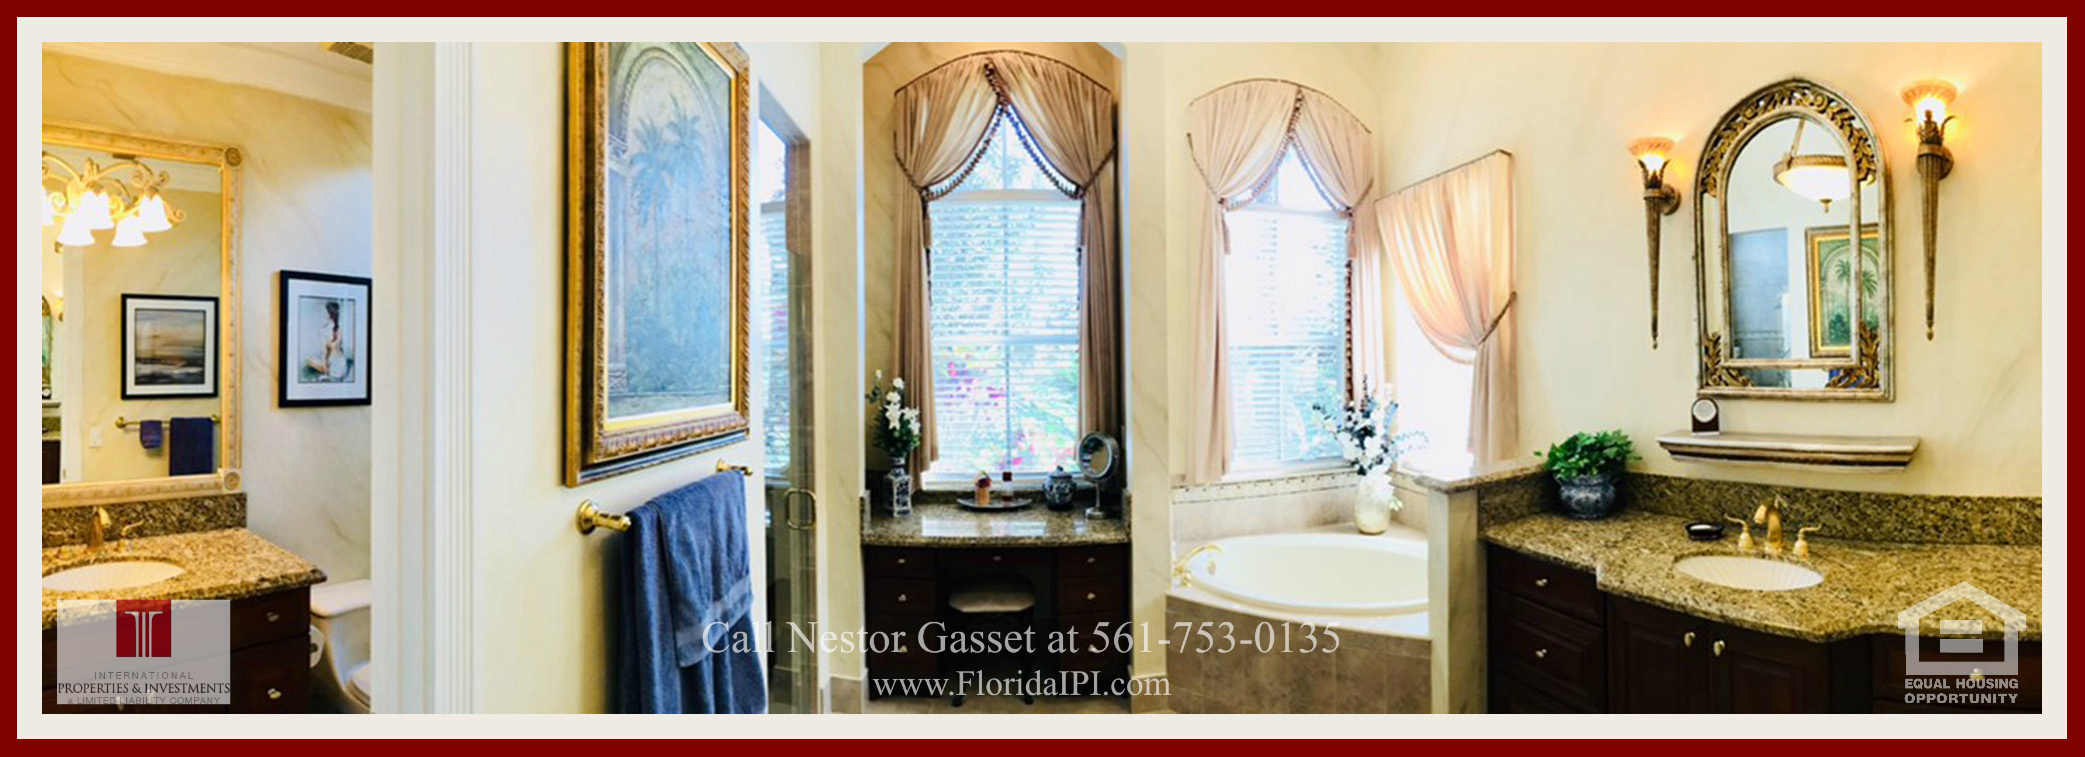 West Palm Beach Fl golf course community estate home for sale  - The bathroom of this home for sale in The Preserve at Ironhorse has his and hers baths, a roman tub, designer drapes, custom archways, custom crown molding and granite countertops.